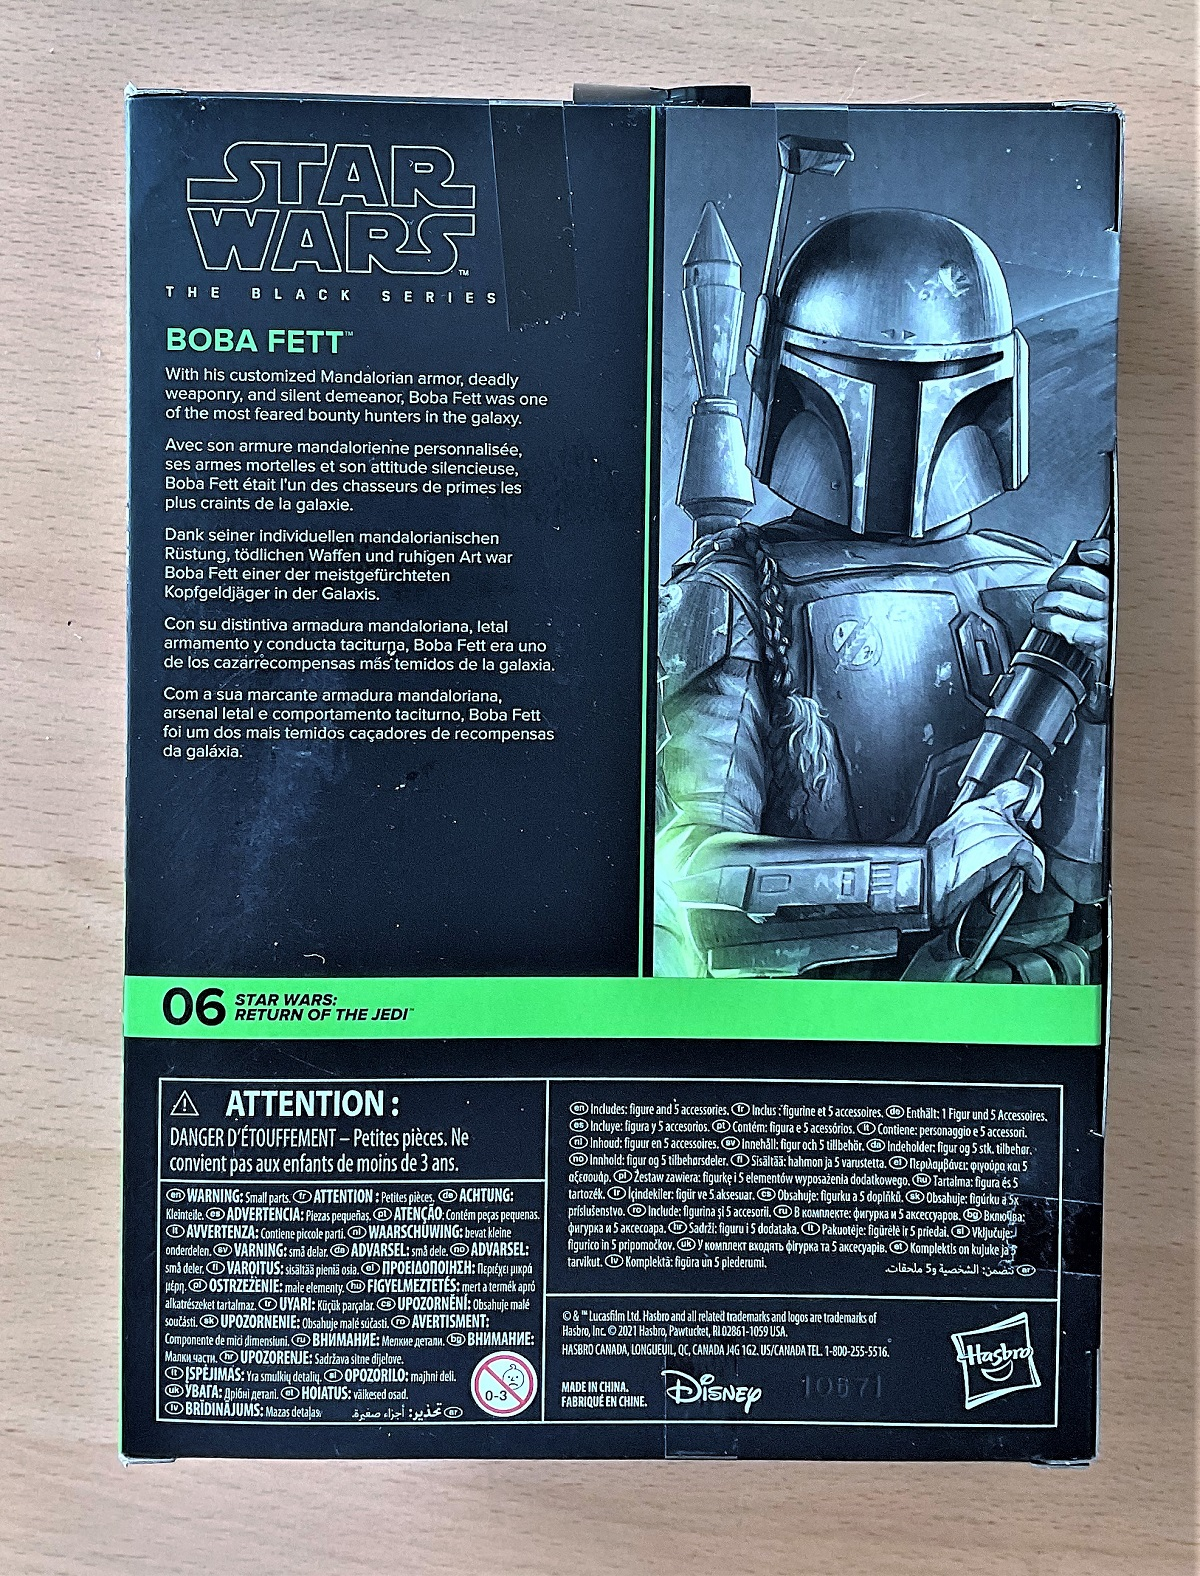 Star Wars, The Black Series miniature action figure of Boba Fett taken from Star Wars; Return of the - Image 2 of 3